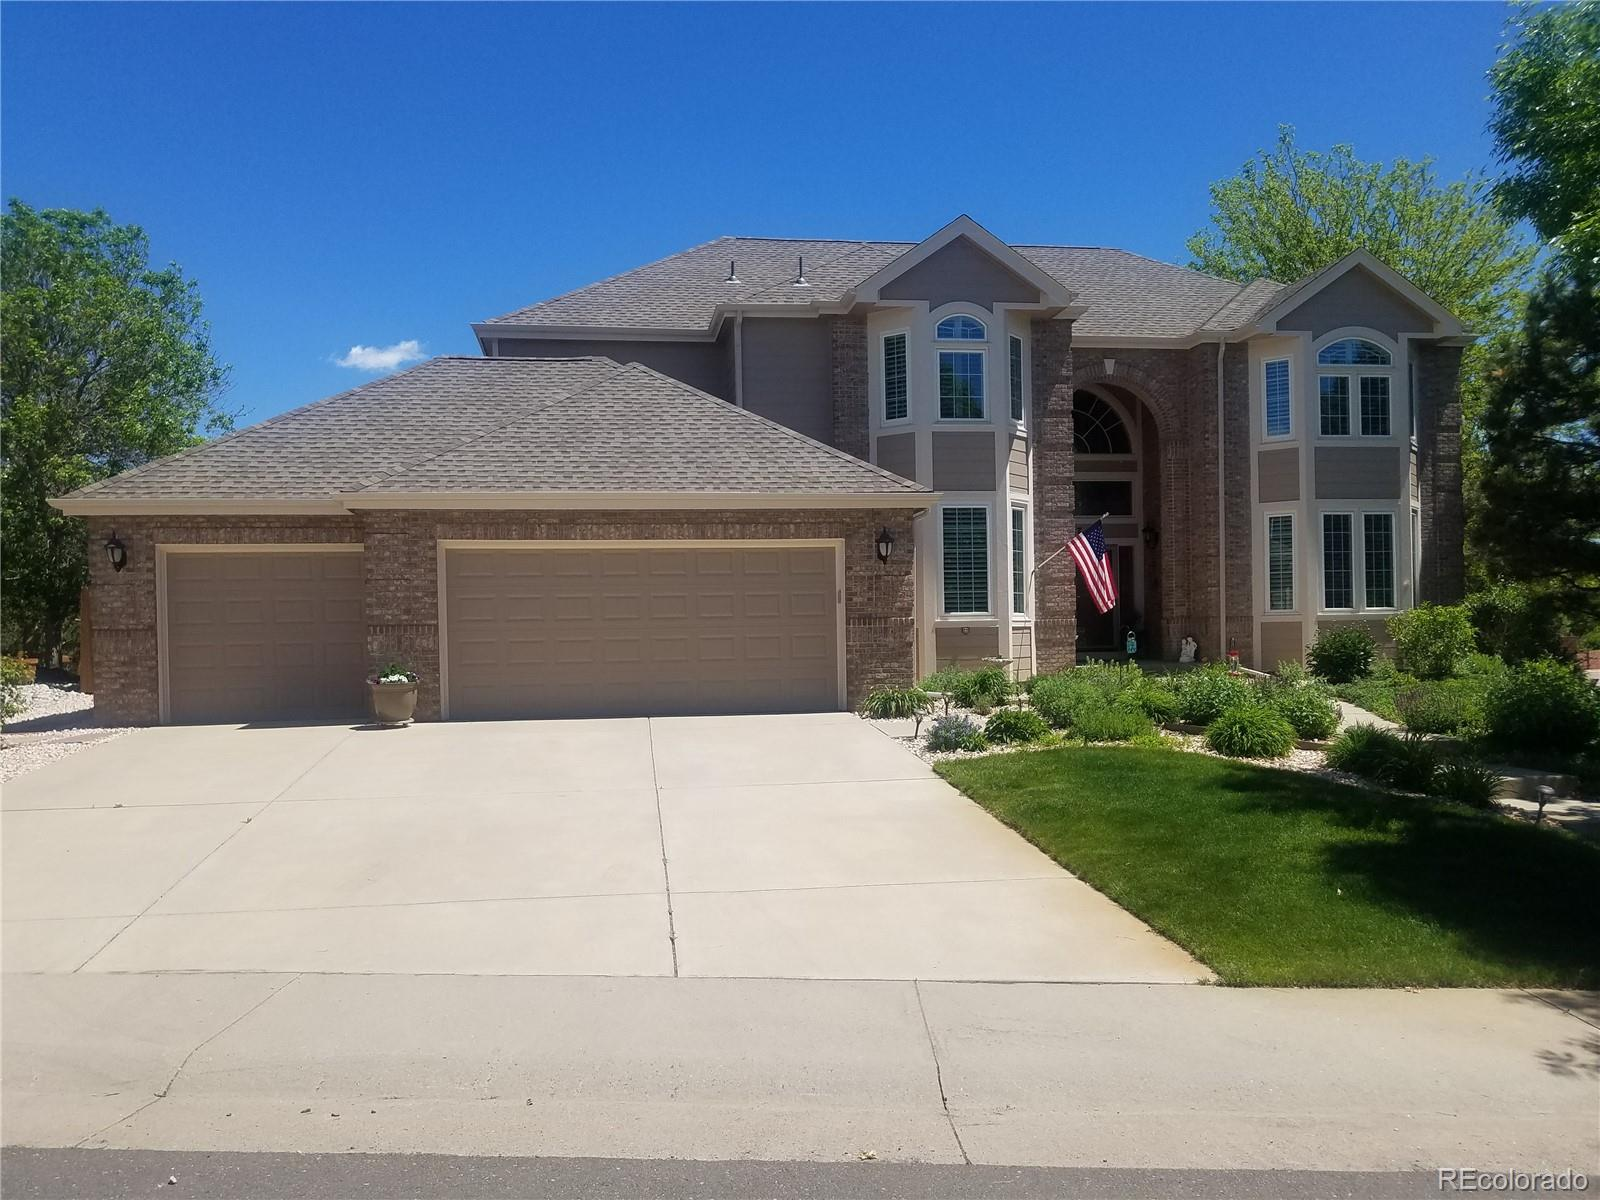 8447 Fairview Way, Lone Tree CO 80124